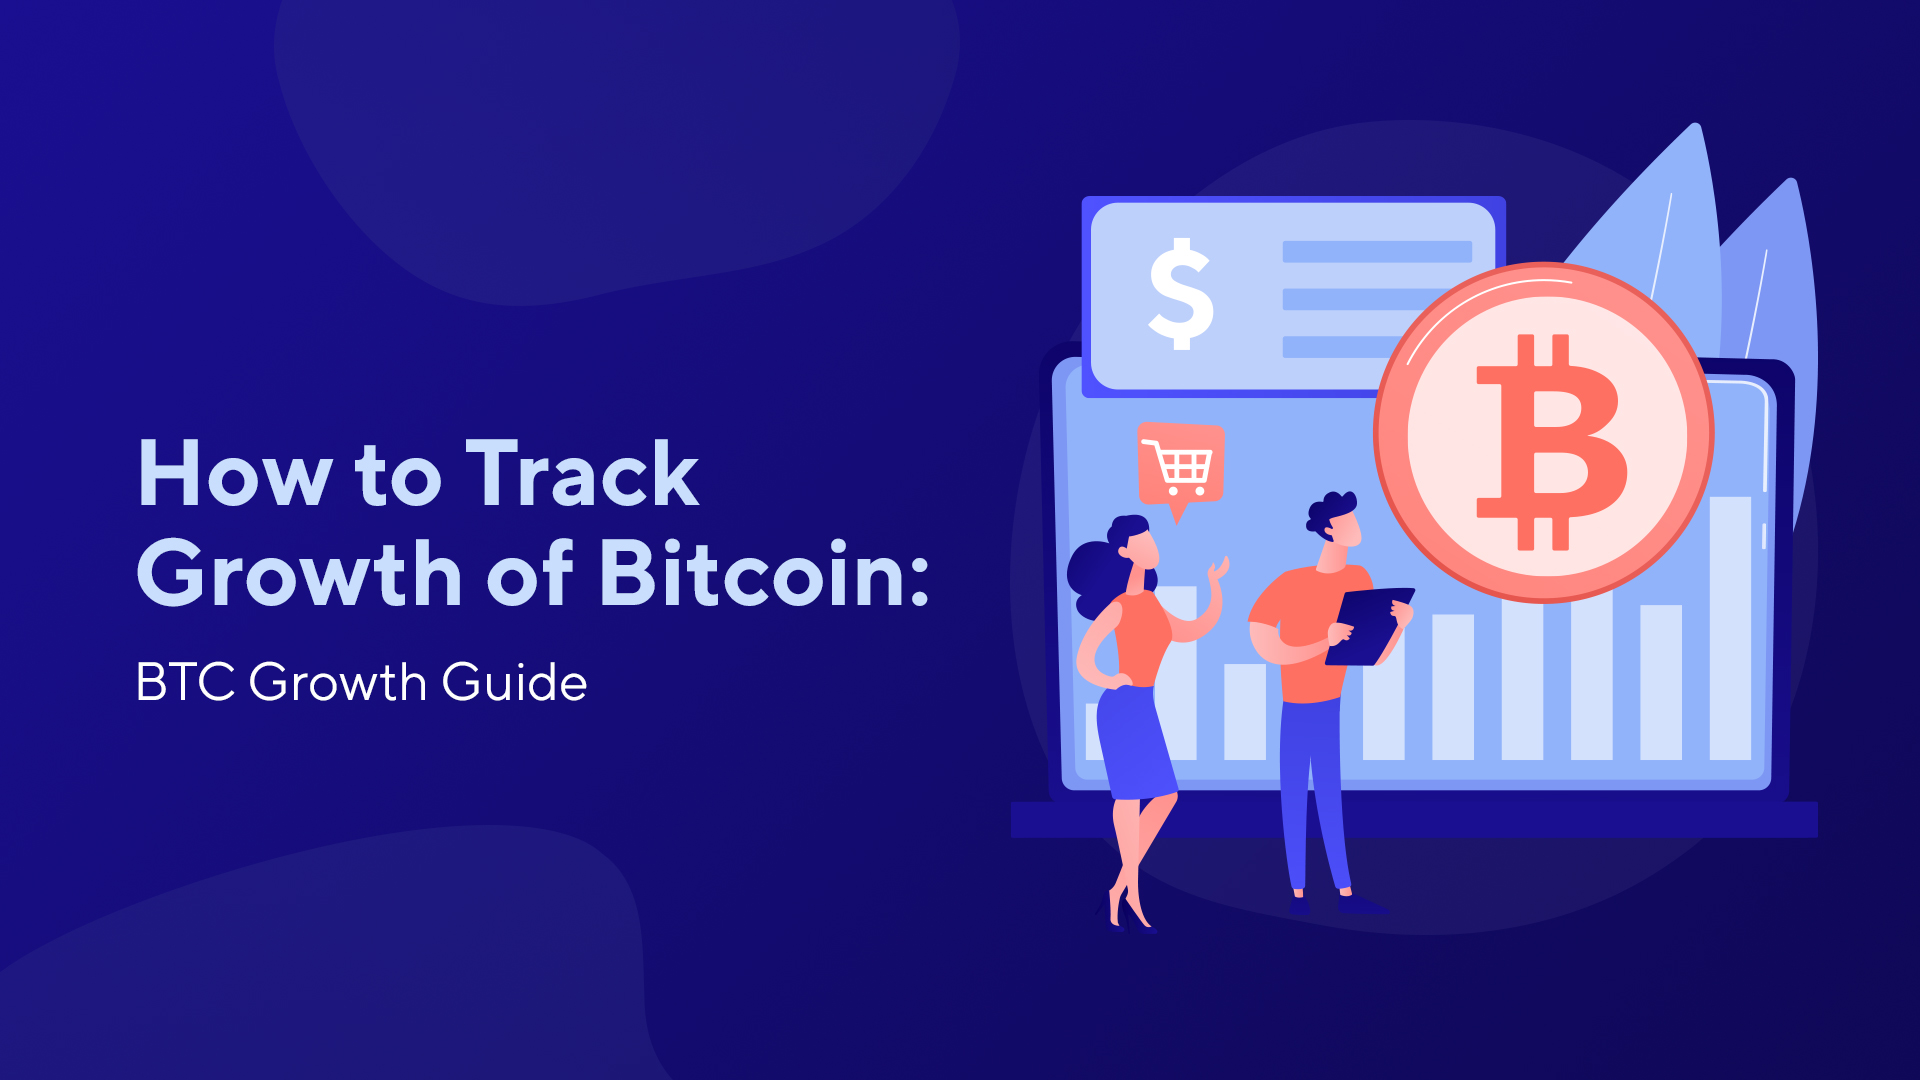 How to Track Growth of Bitcoin: BTC Growth Guide